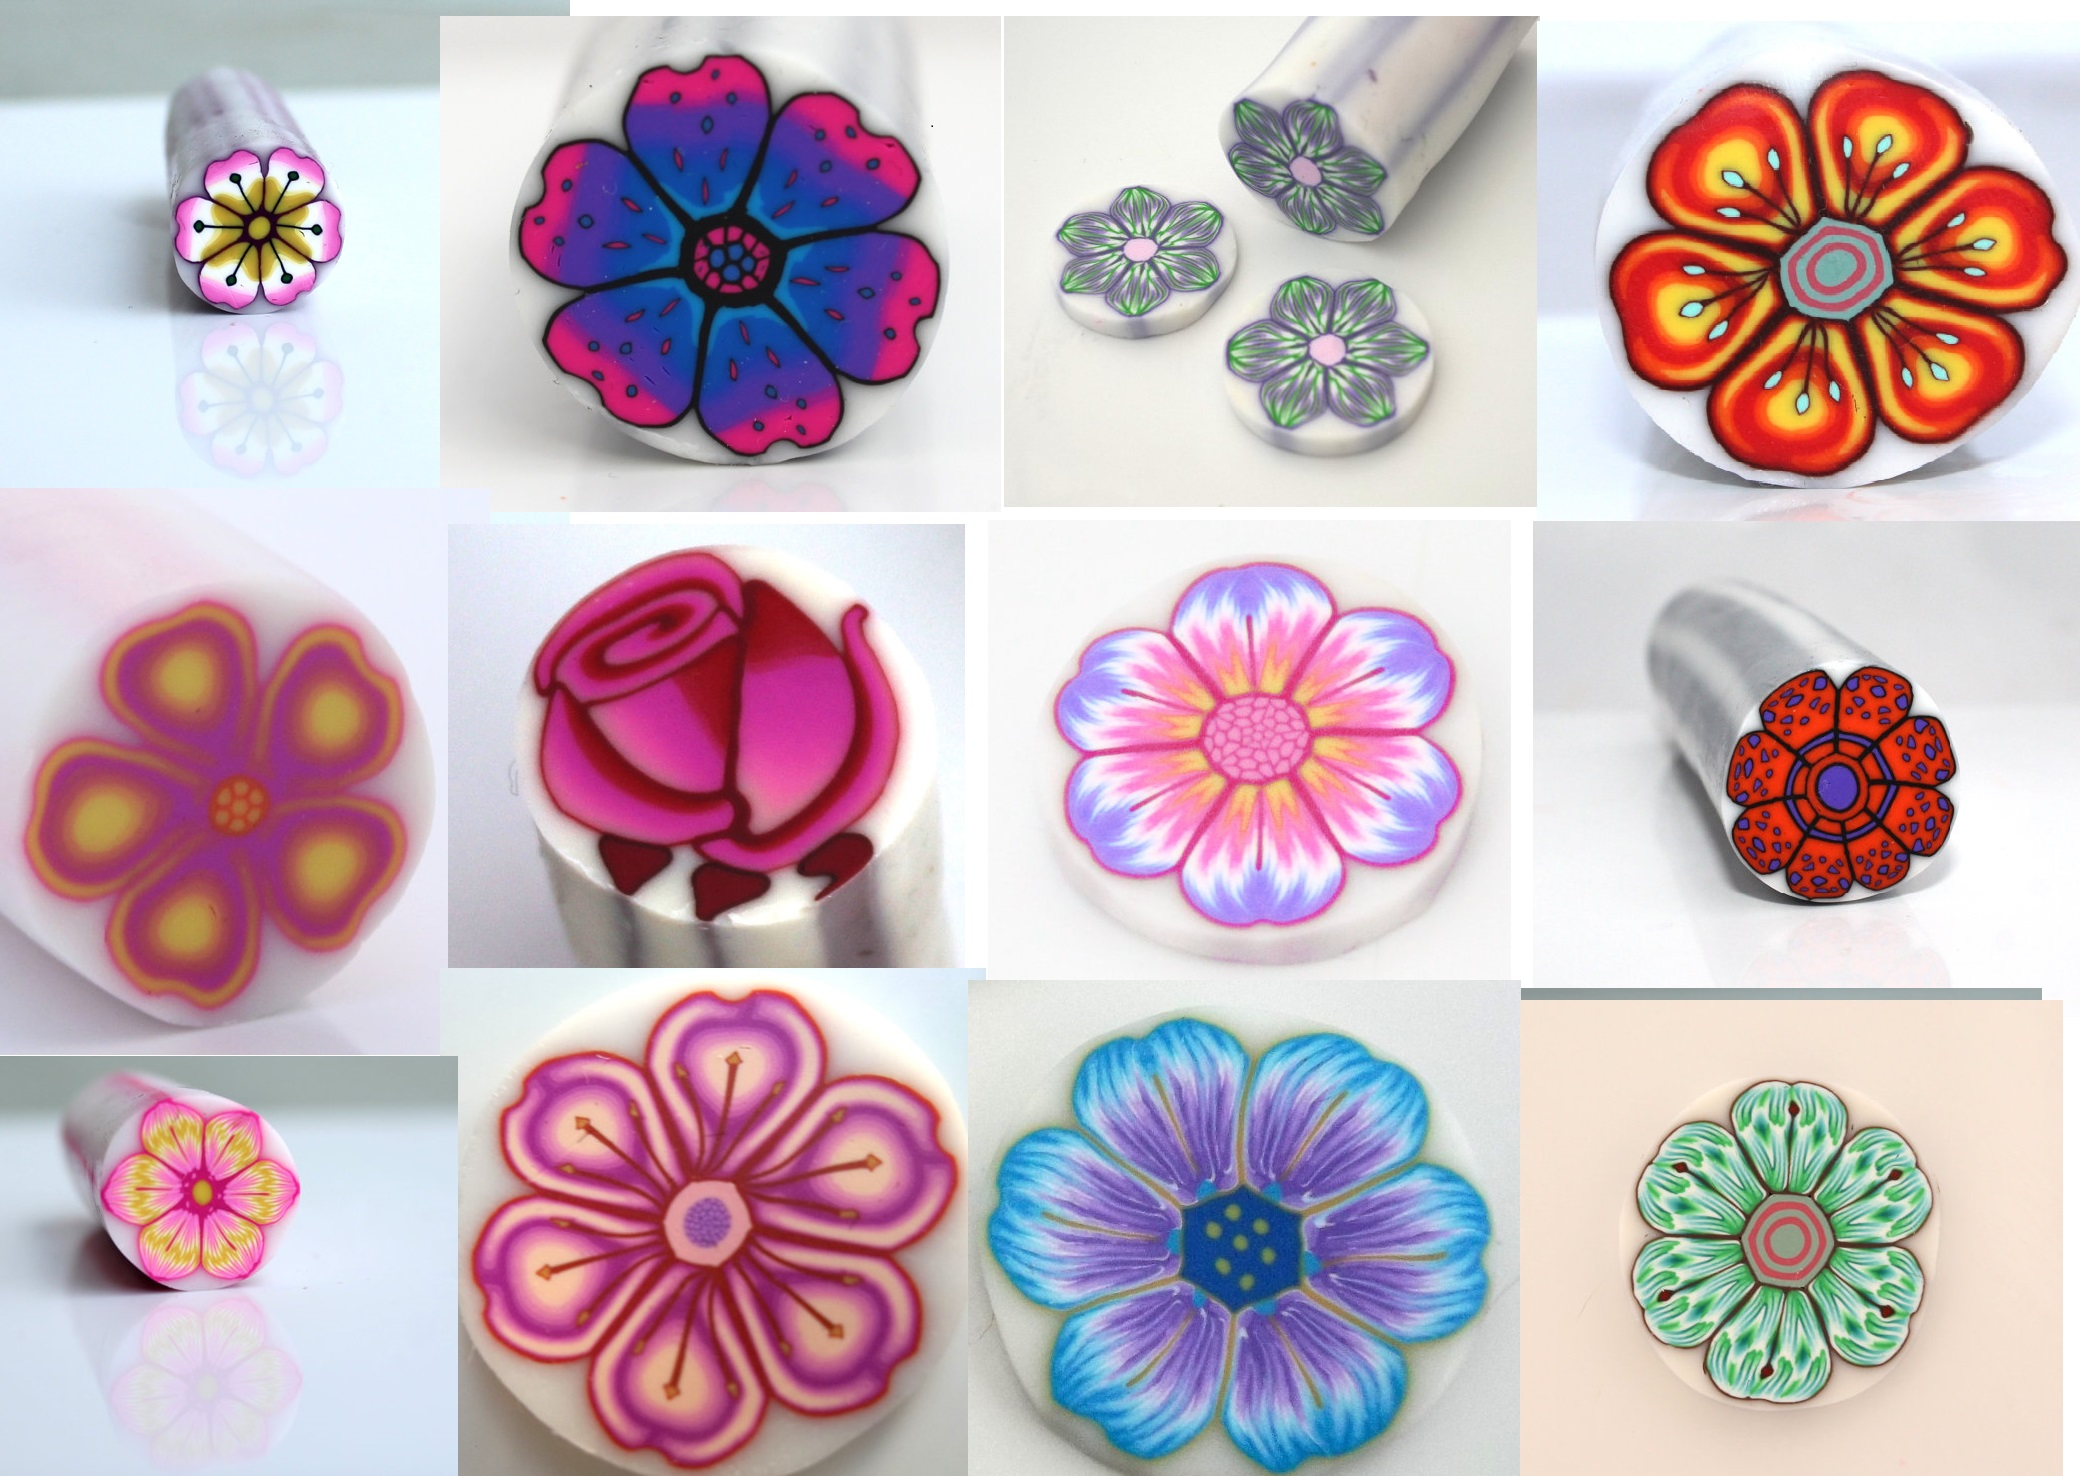 17 polymer clay flower canes to try